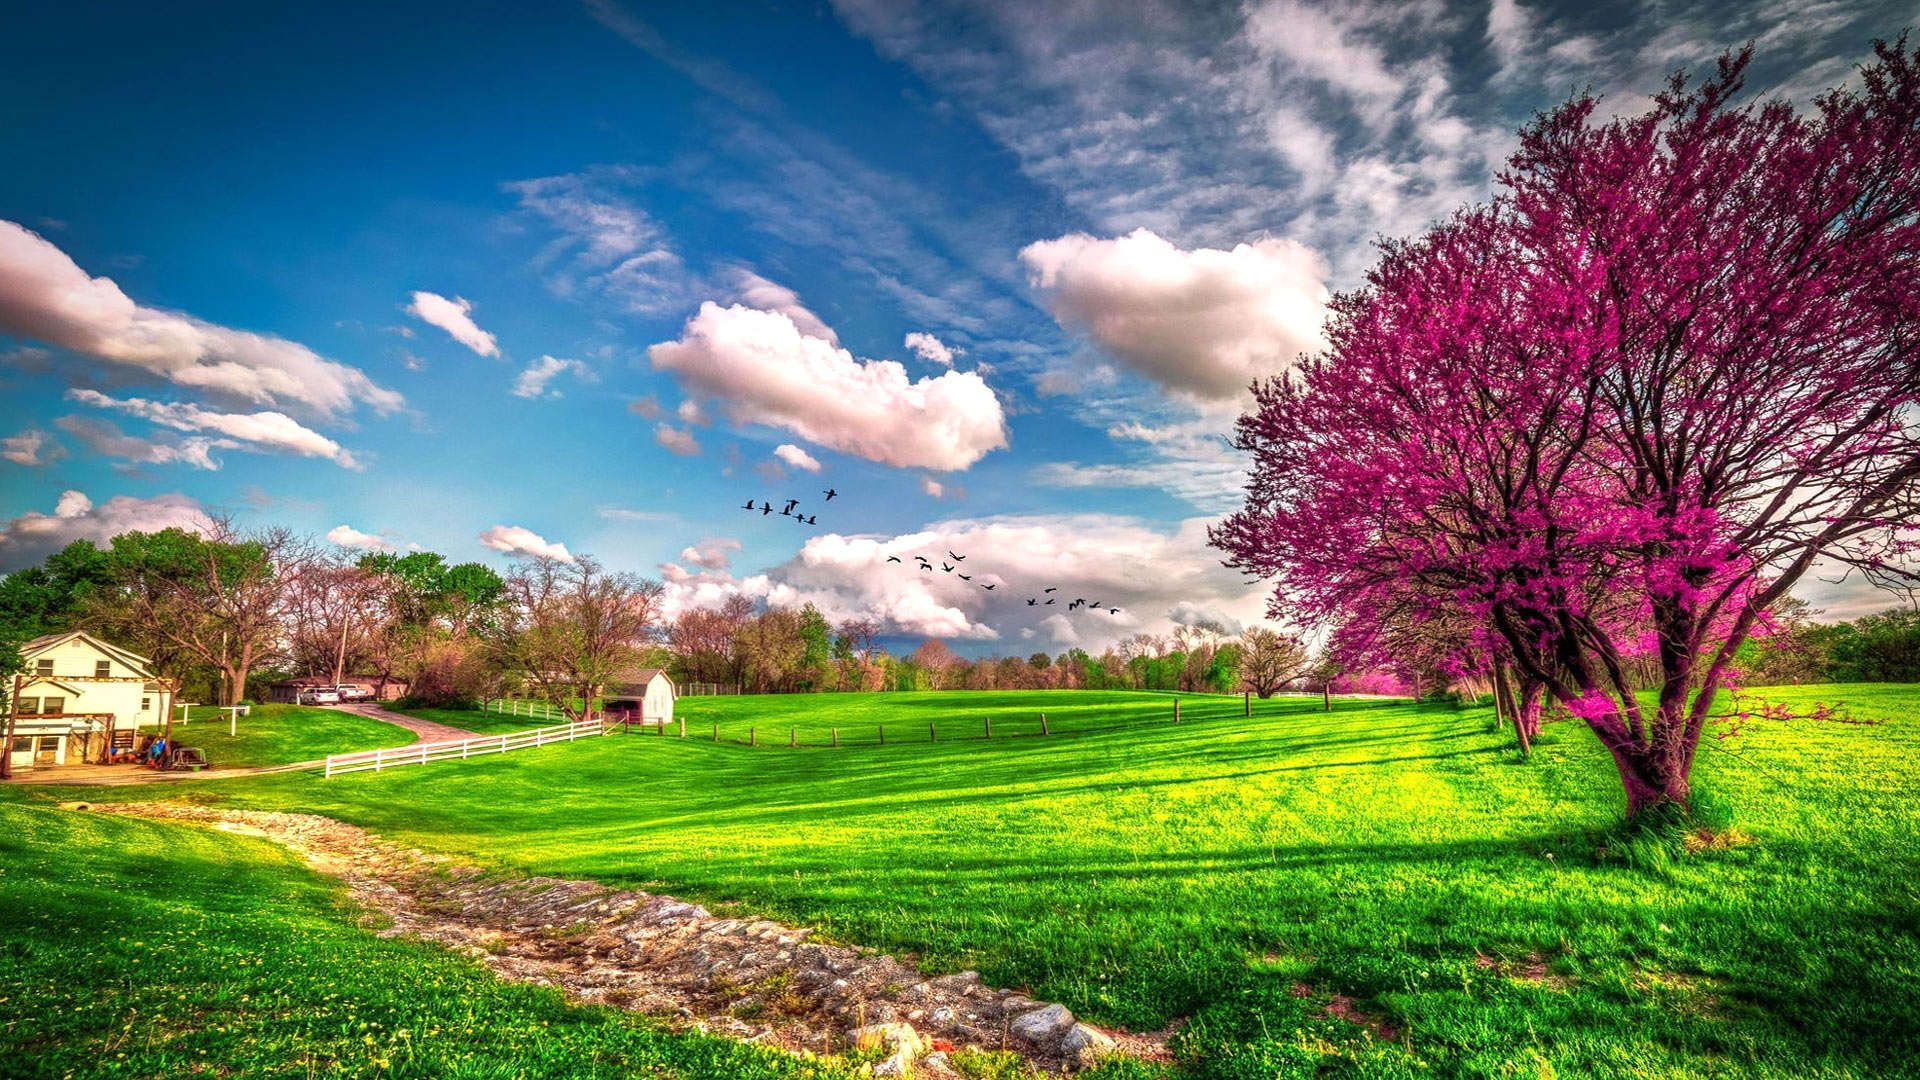 Beautiful Spring Scenery Wallpapers Hd 1080p 1920x1080 Desktop 03 Yoyo Jpg 1920 1080 Spring Wallpaper Spring Landscape Scenery Wallpaper